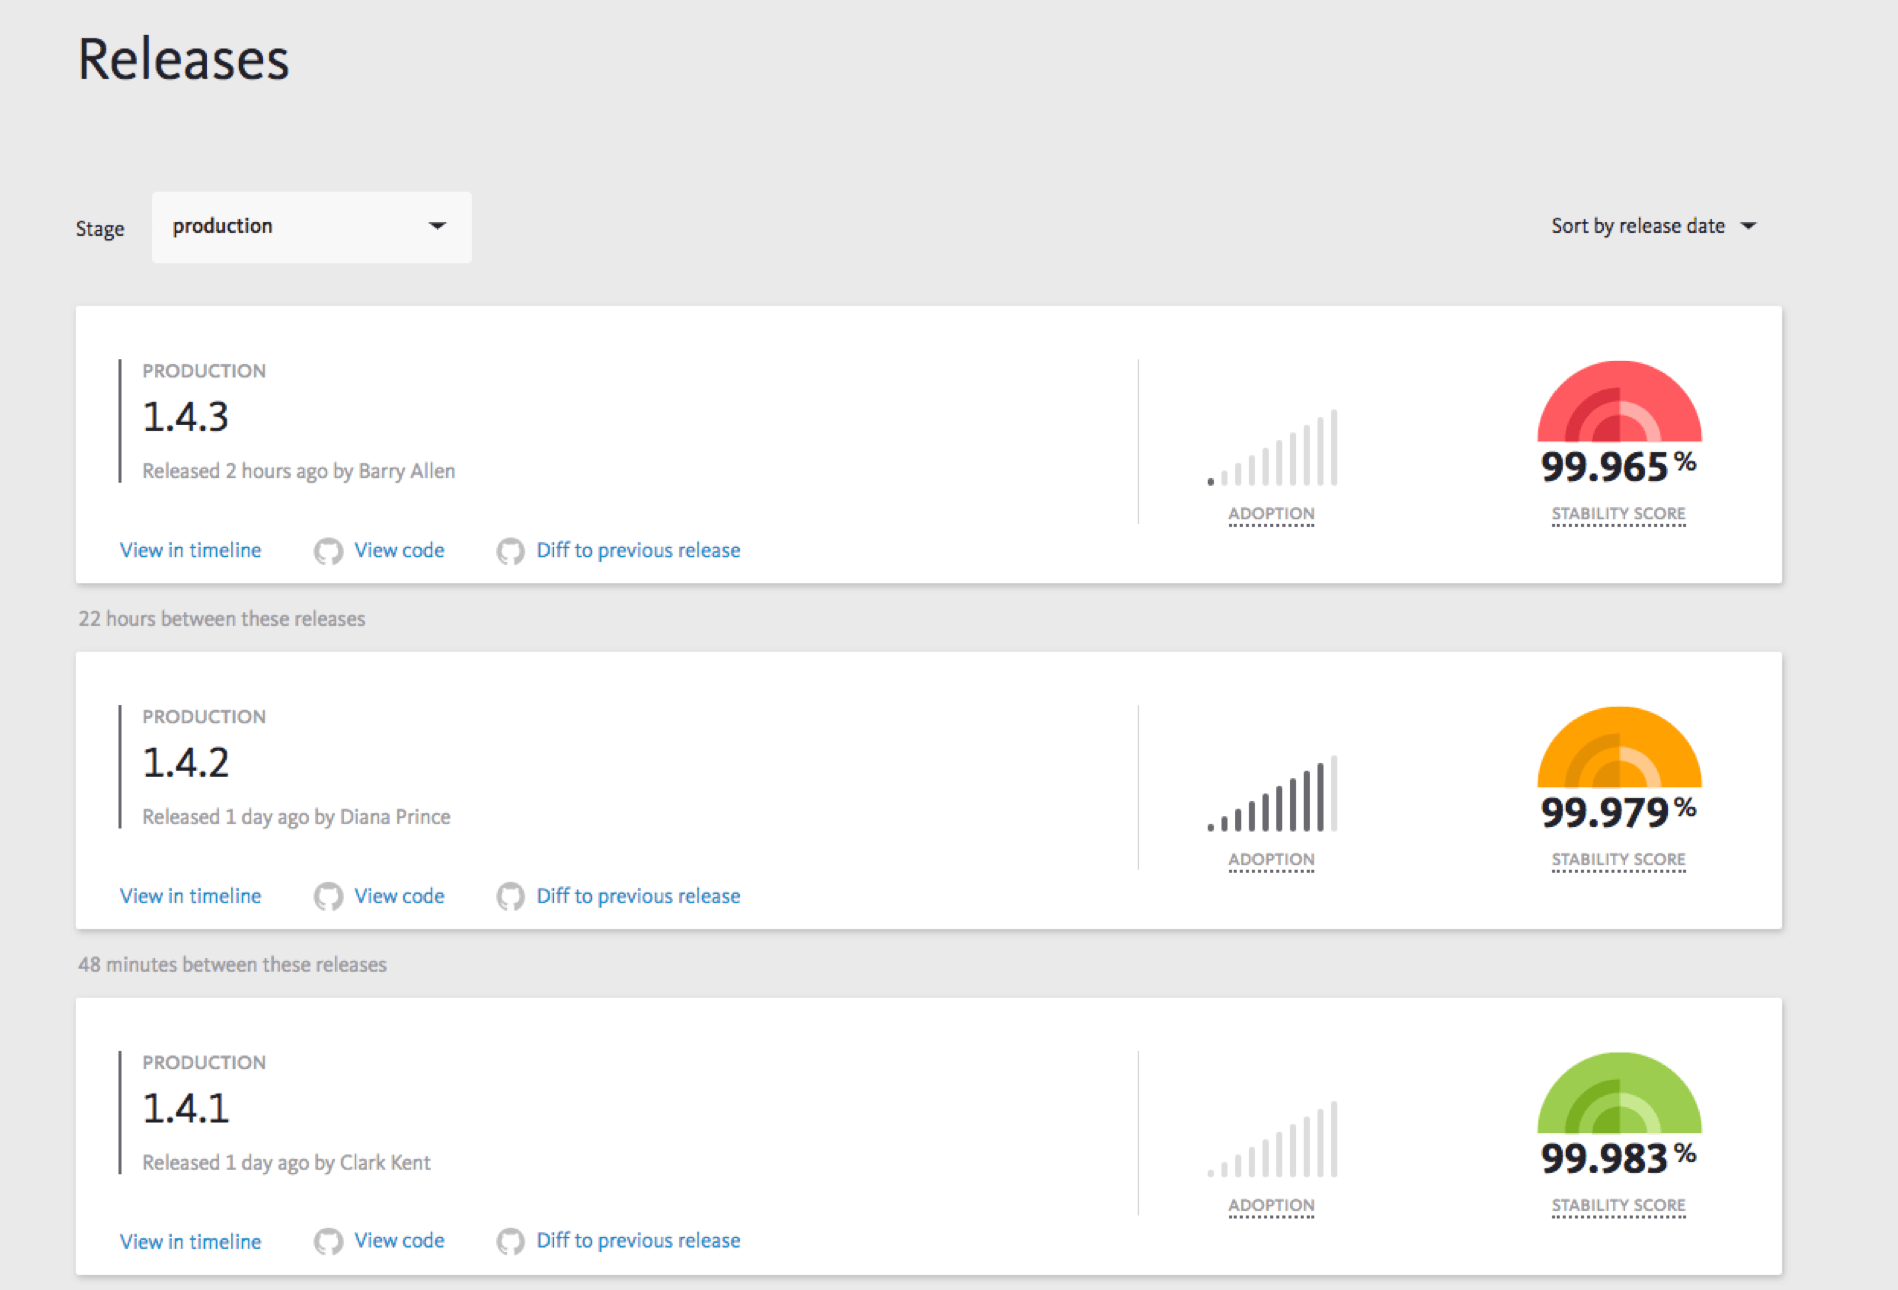 Release dashboard with stability score